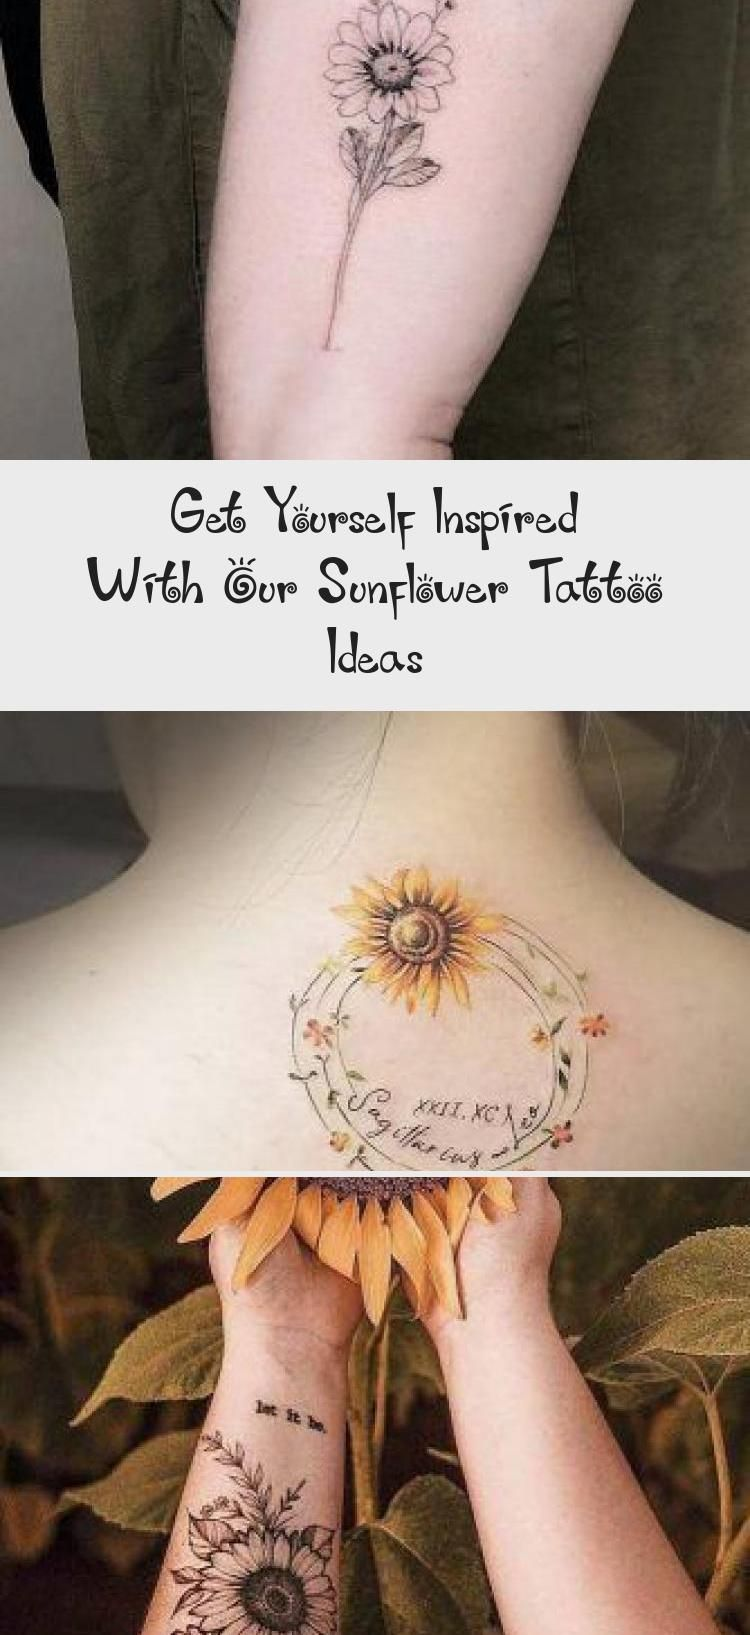 Significance Of A Sunflower Tattoo Backtattoo A Lot Of Beautiful Designs For Women Here You Will Find Not Onl In 2020 Sunflower Tattoo Tattoos Floral Thigh Tattoos